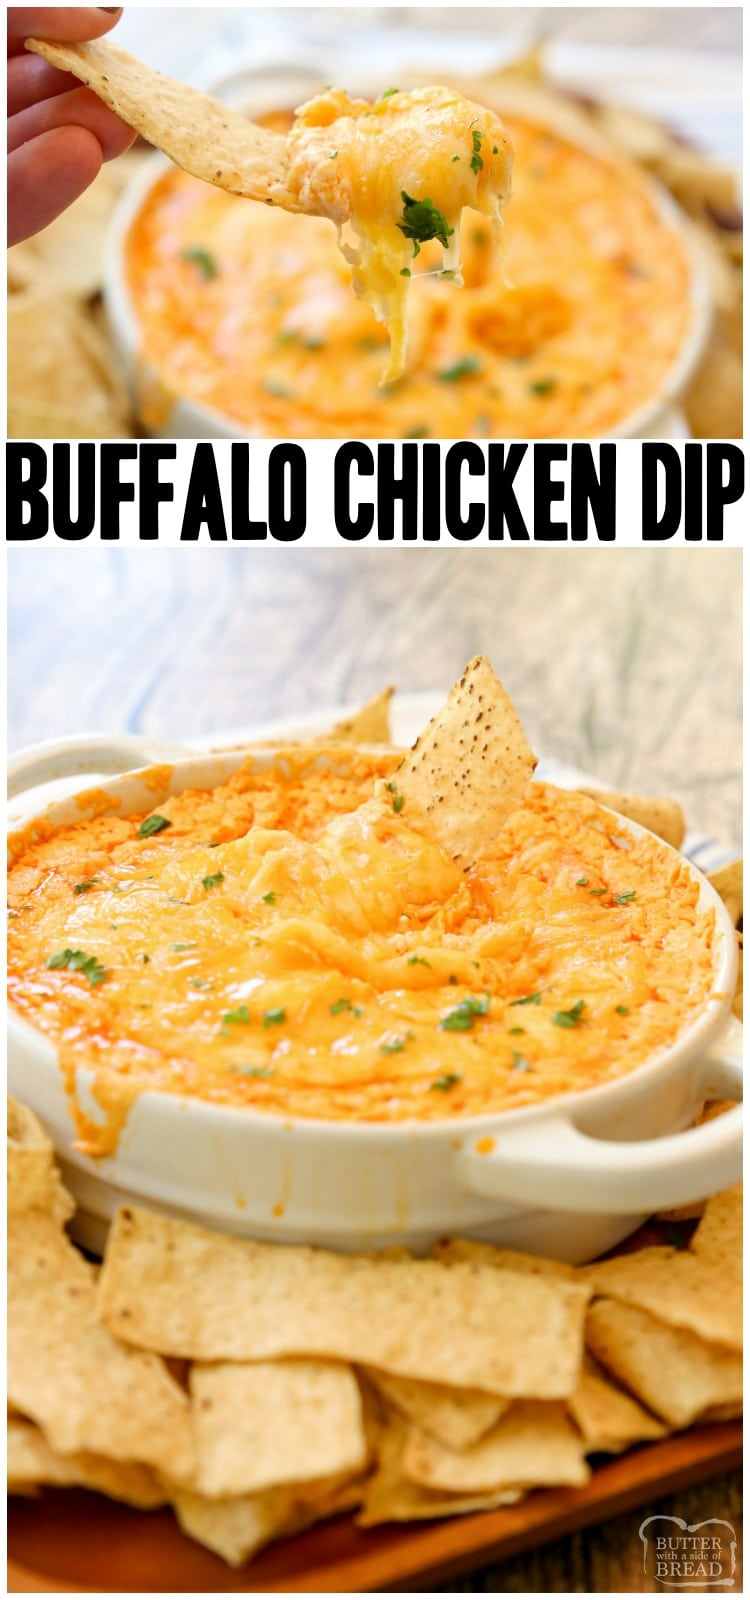 Easy Buffalo Chicken Dip Recipe made with 3 cheeses, juicy chicken and a flavorful Buffalo sauce makes an awesome chicken wing dip with a bit of a kick. Easy Buffalo Chicken Dip is an easy appetizer perfect for game day. #easybuffalochickendip #buffalochickendip #buffalosauce #chickenwingdip #buffalochickenrecipe #buffalochicken #spicychicken #chickendip #easyappetizer #recipefrom Butter With a Side of Bread